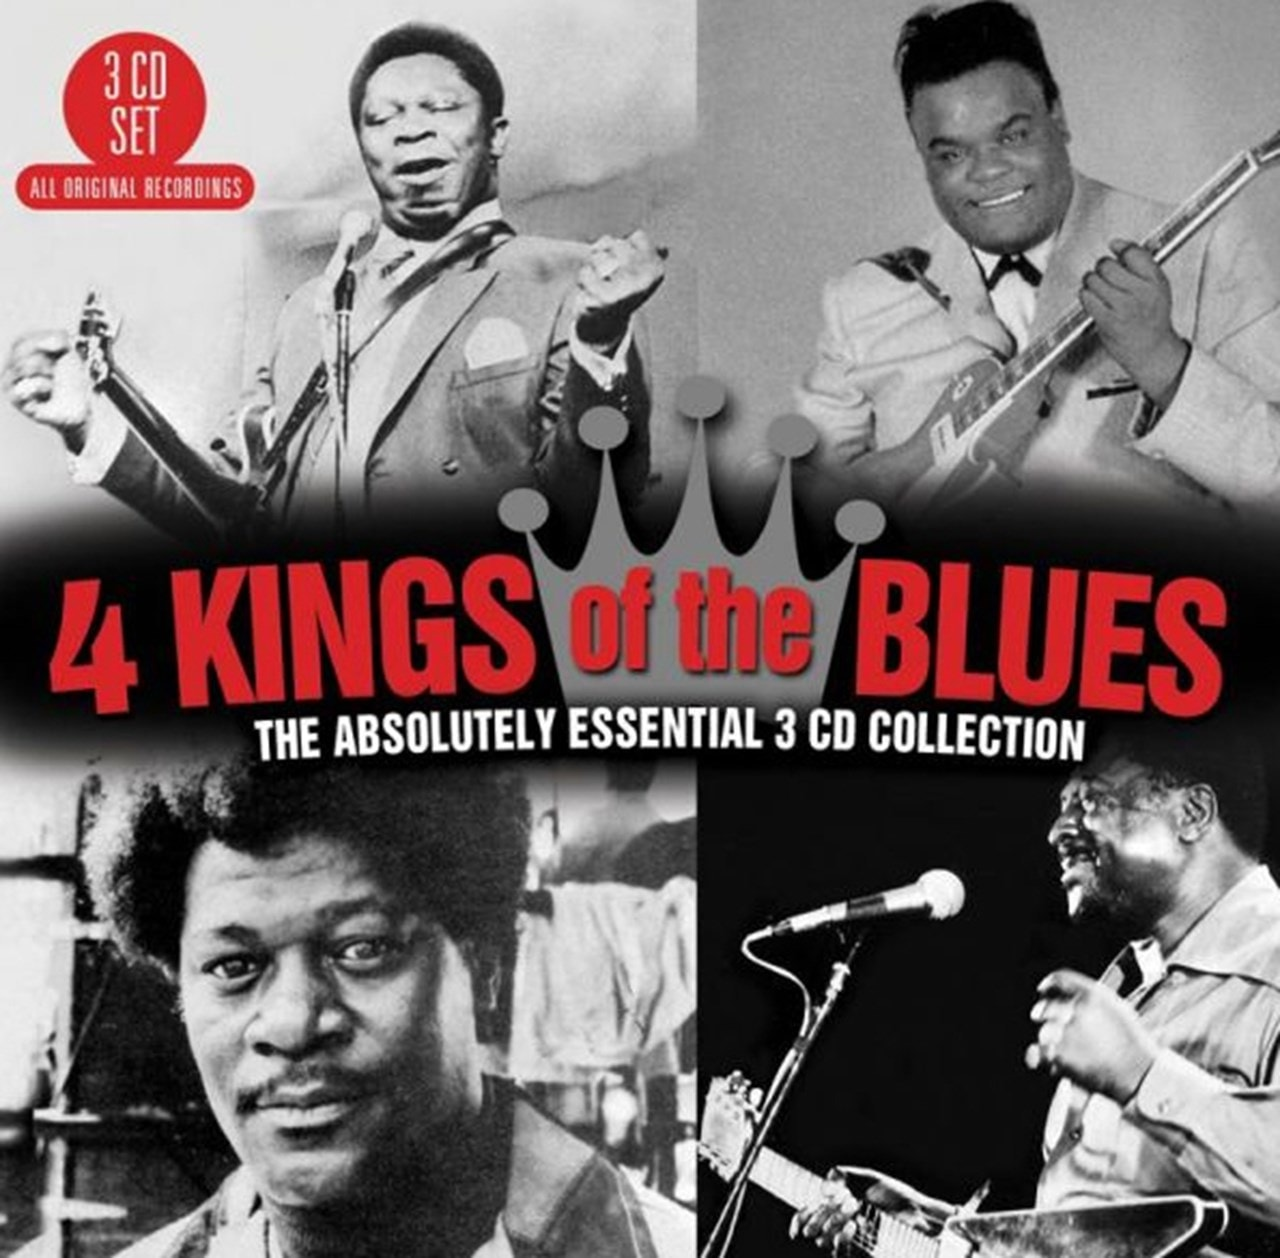 4 Kings of the Blues: The Absolutely Essential 3CD Collection - 1